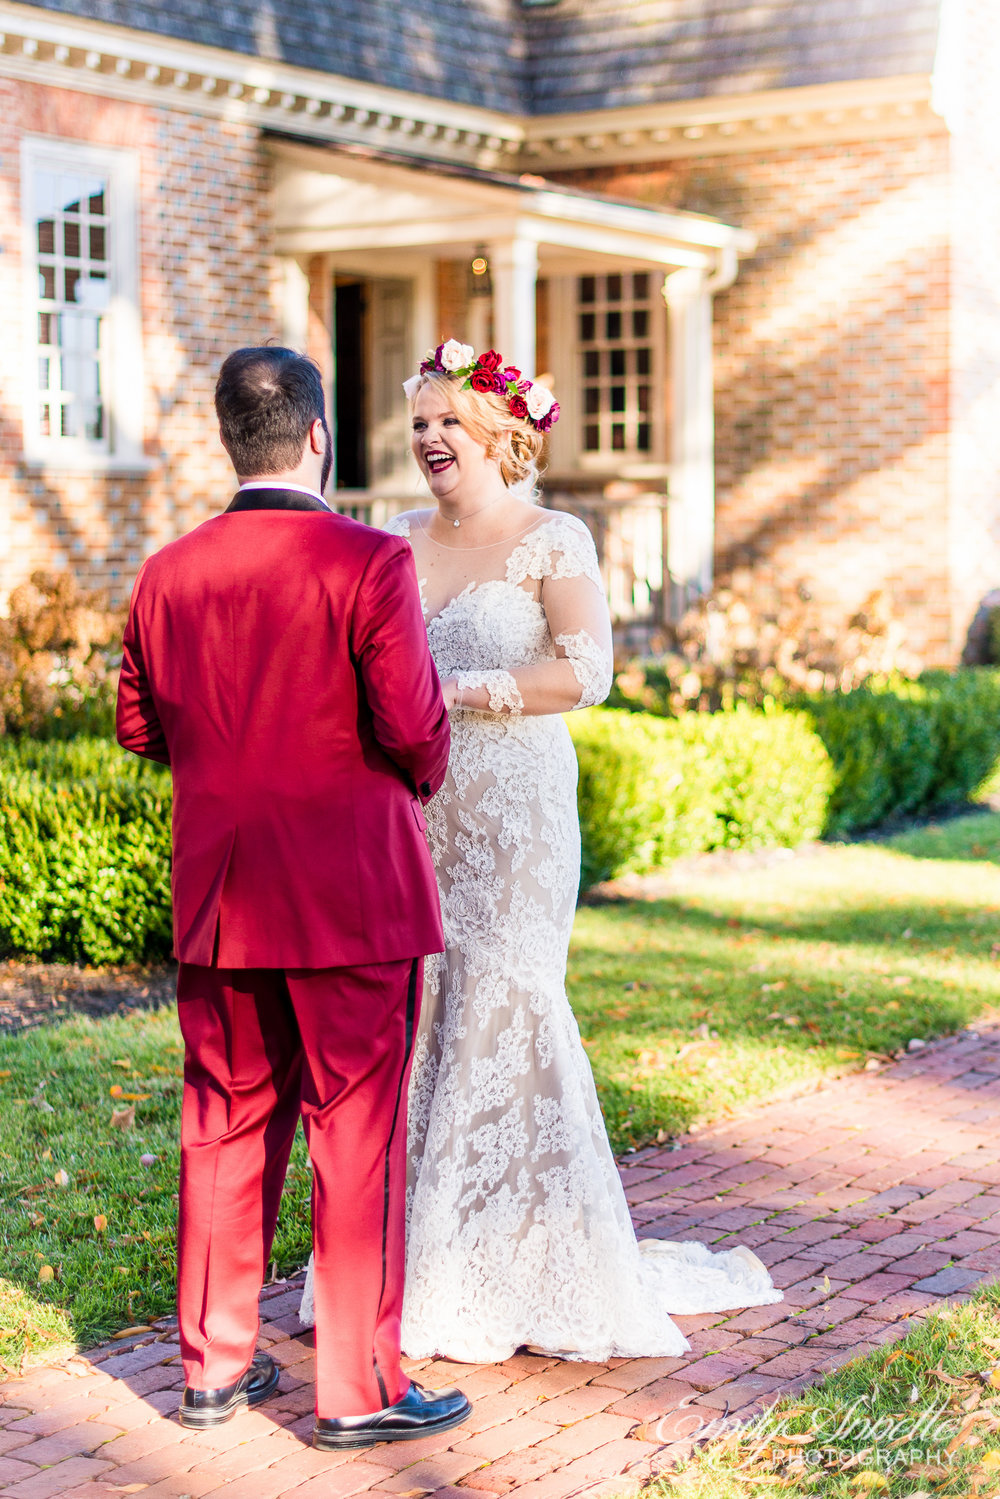 A bride in a lace wedding dress with sleeves laughing as she looks at her groom for the first time for their first look before their wedding ceremony at Willow Oaks Country Club in Richmond, Virginia